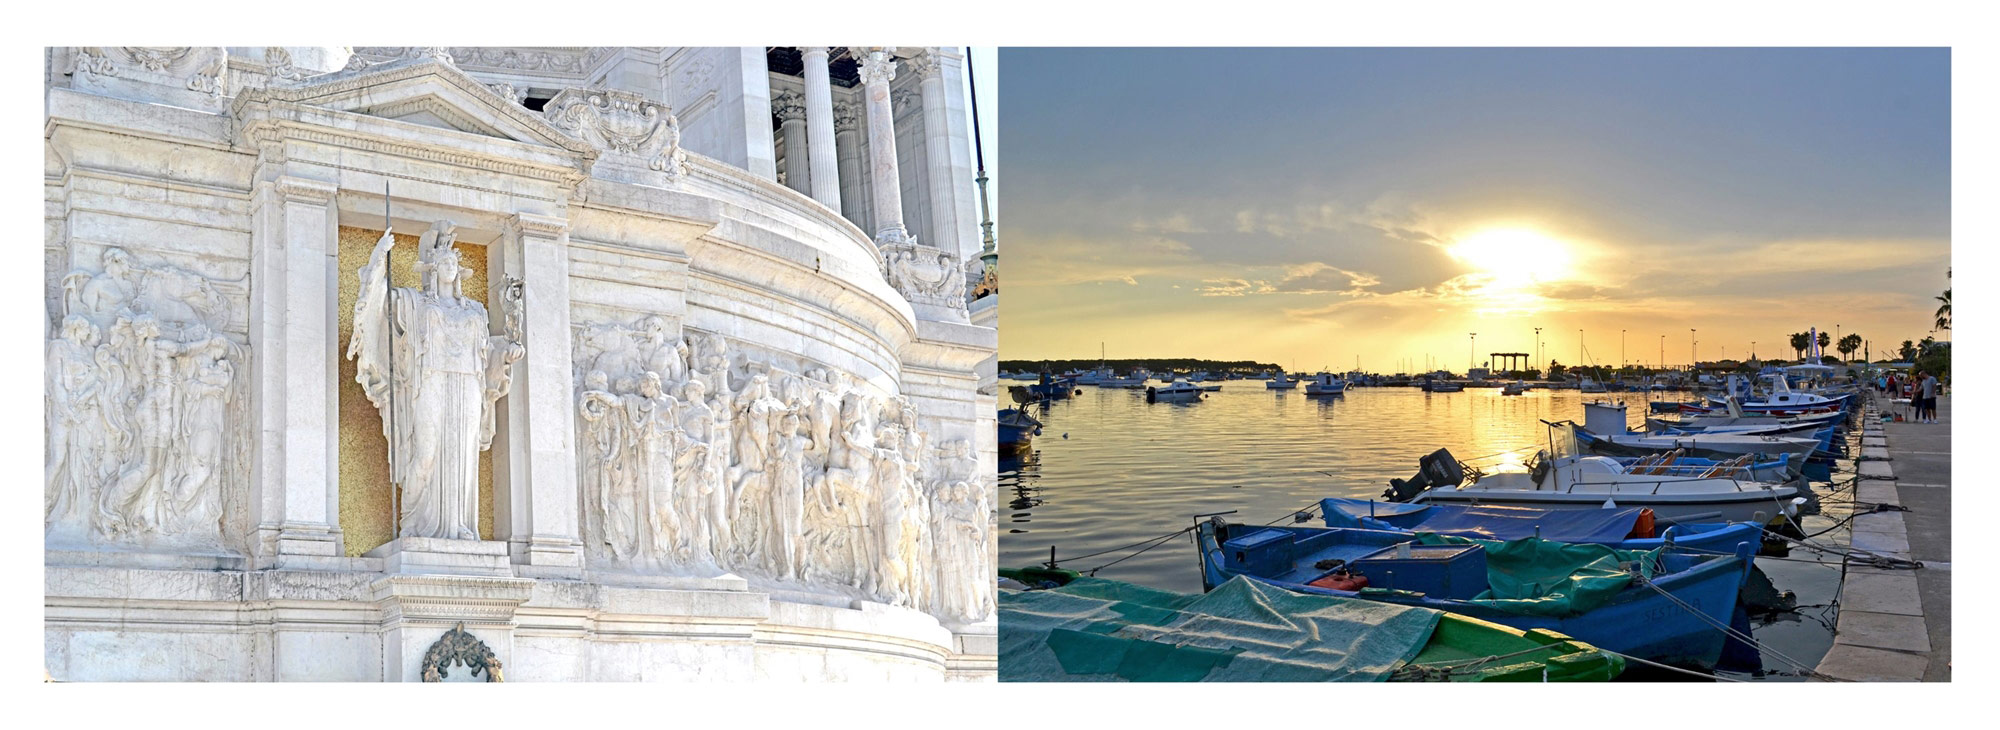 © Giovanni Armenio, A.to Rome II, Photography 12 x 32, The Chelsea International Photography Competition